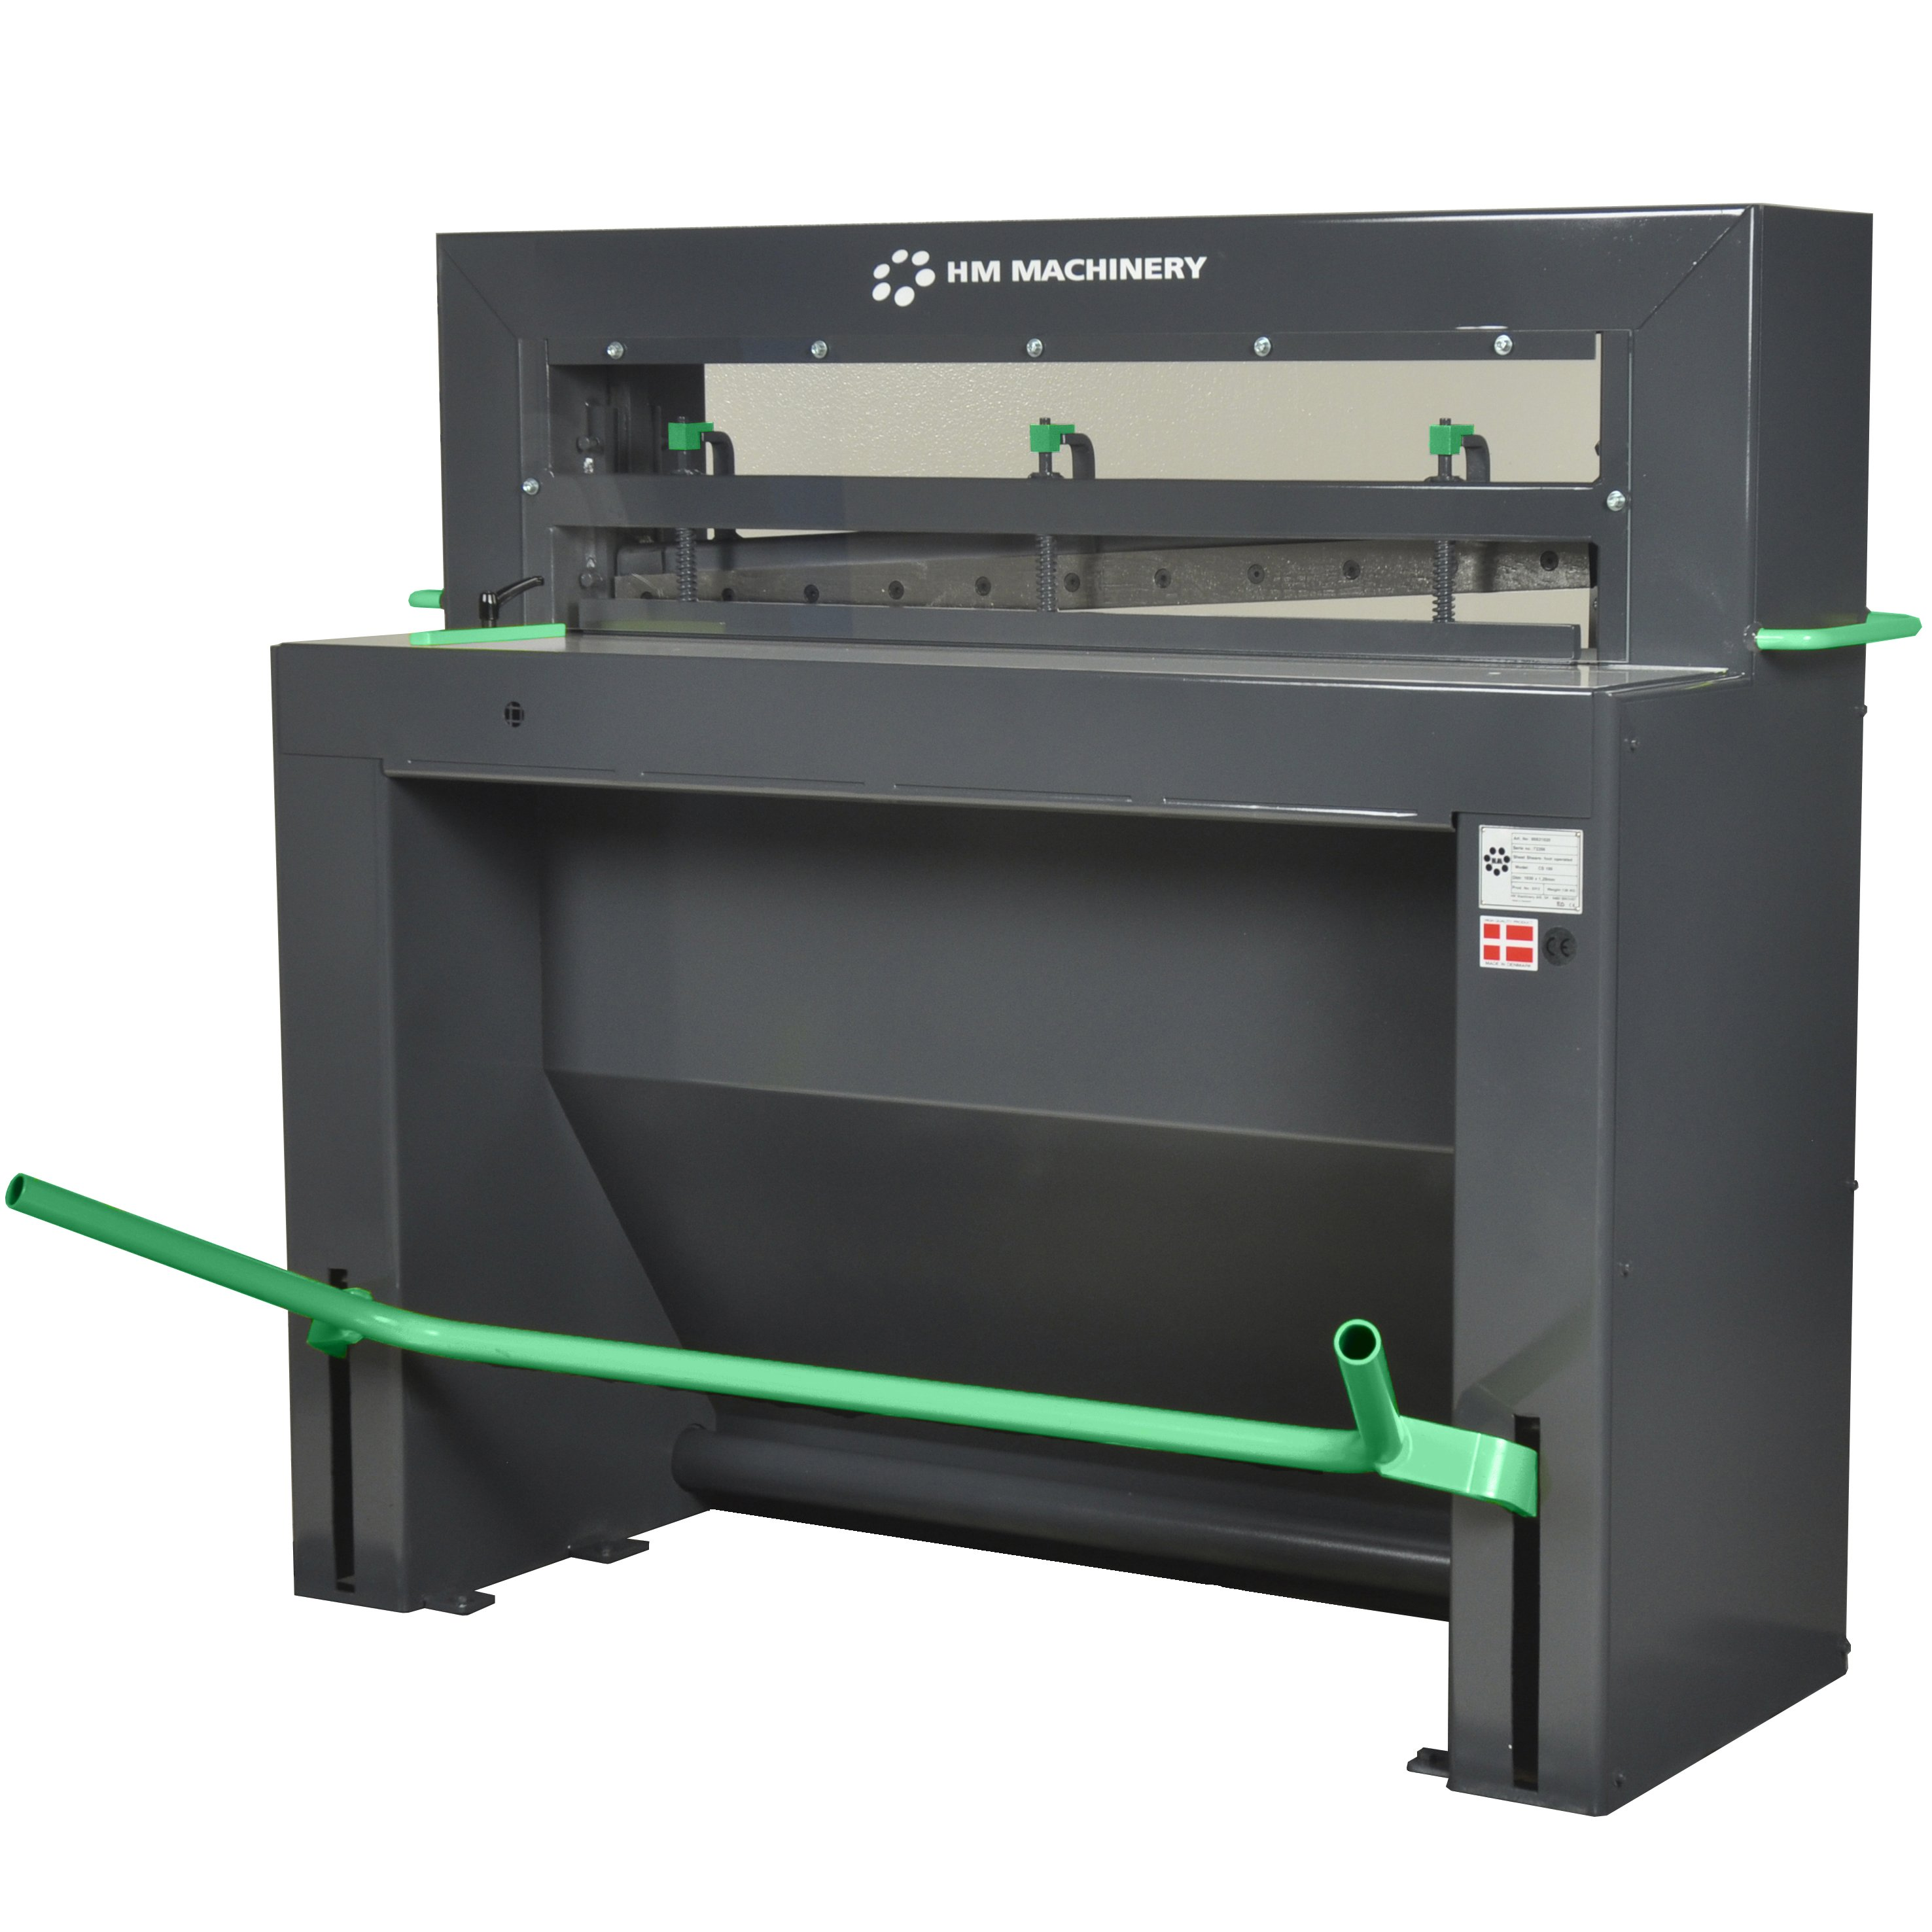 Cisaille guillotine commande au pied CS 100 HM Machinery